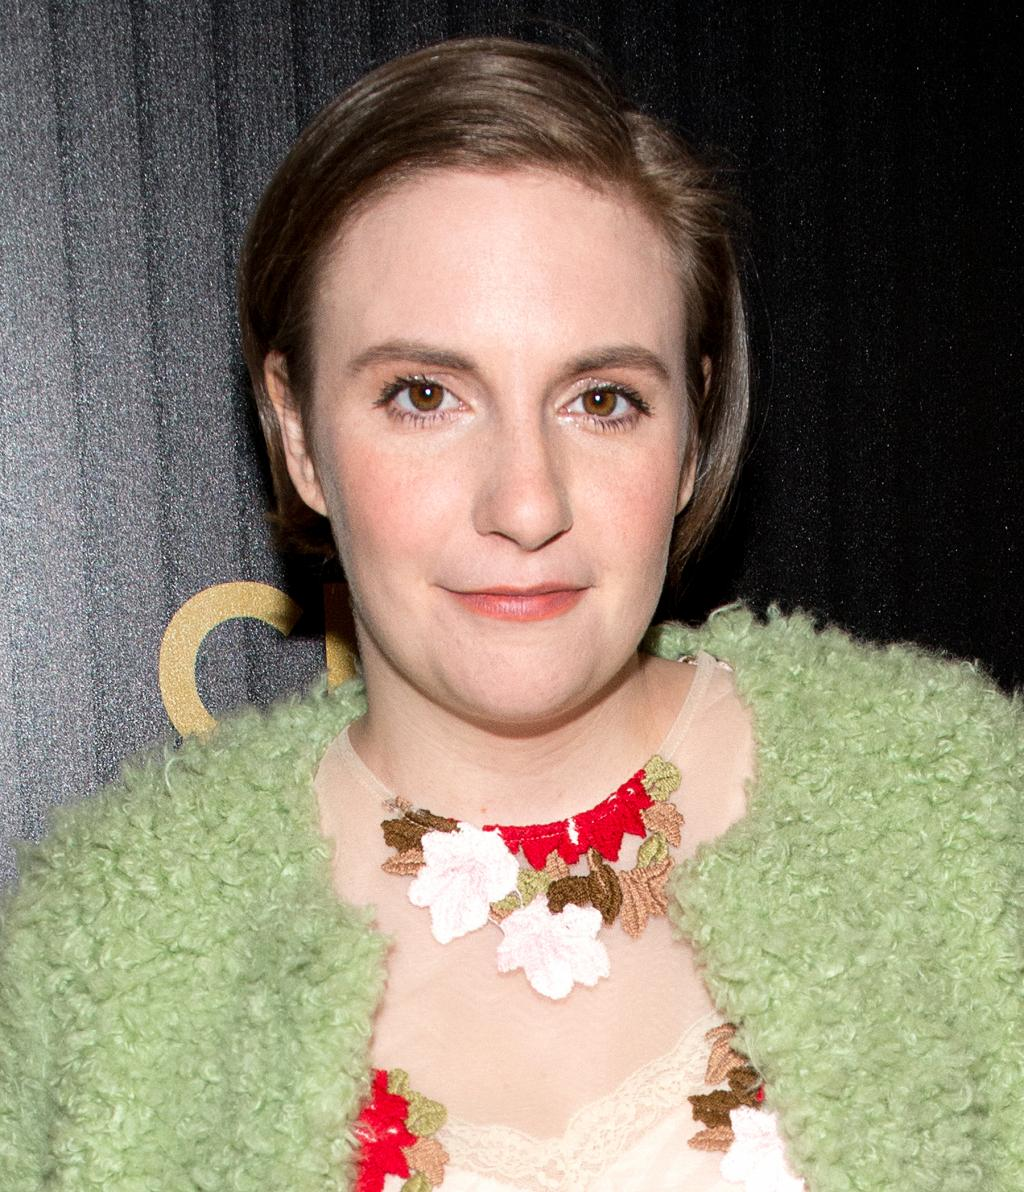 Lena Dunham on Why She       's Walking Back Her Promise to Move to Canada Post-Election:        I        ll Survive Just Fine